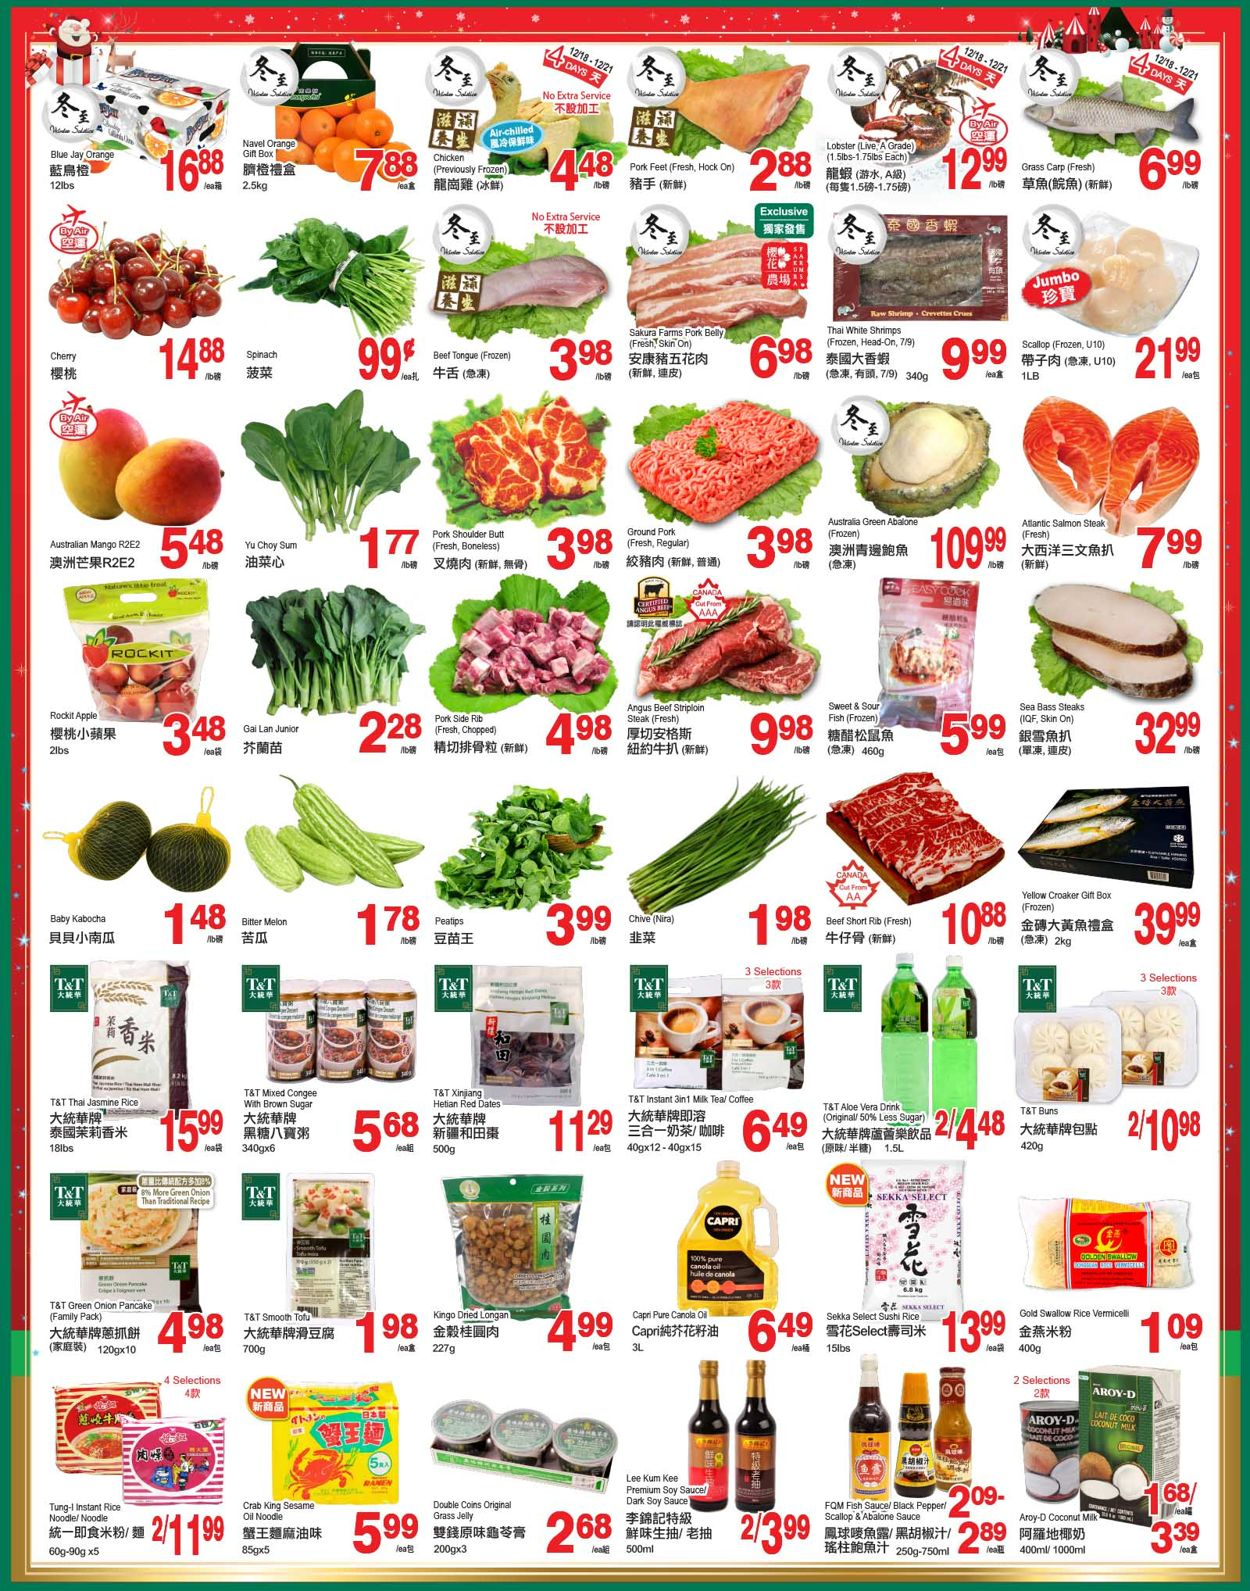 T&T Supermarket Christmas 2020 - British Columbia Flyer - 12/18-12/24/2020 (Page 2)